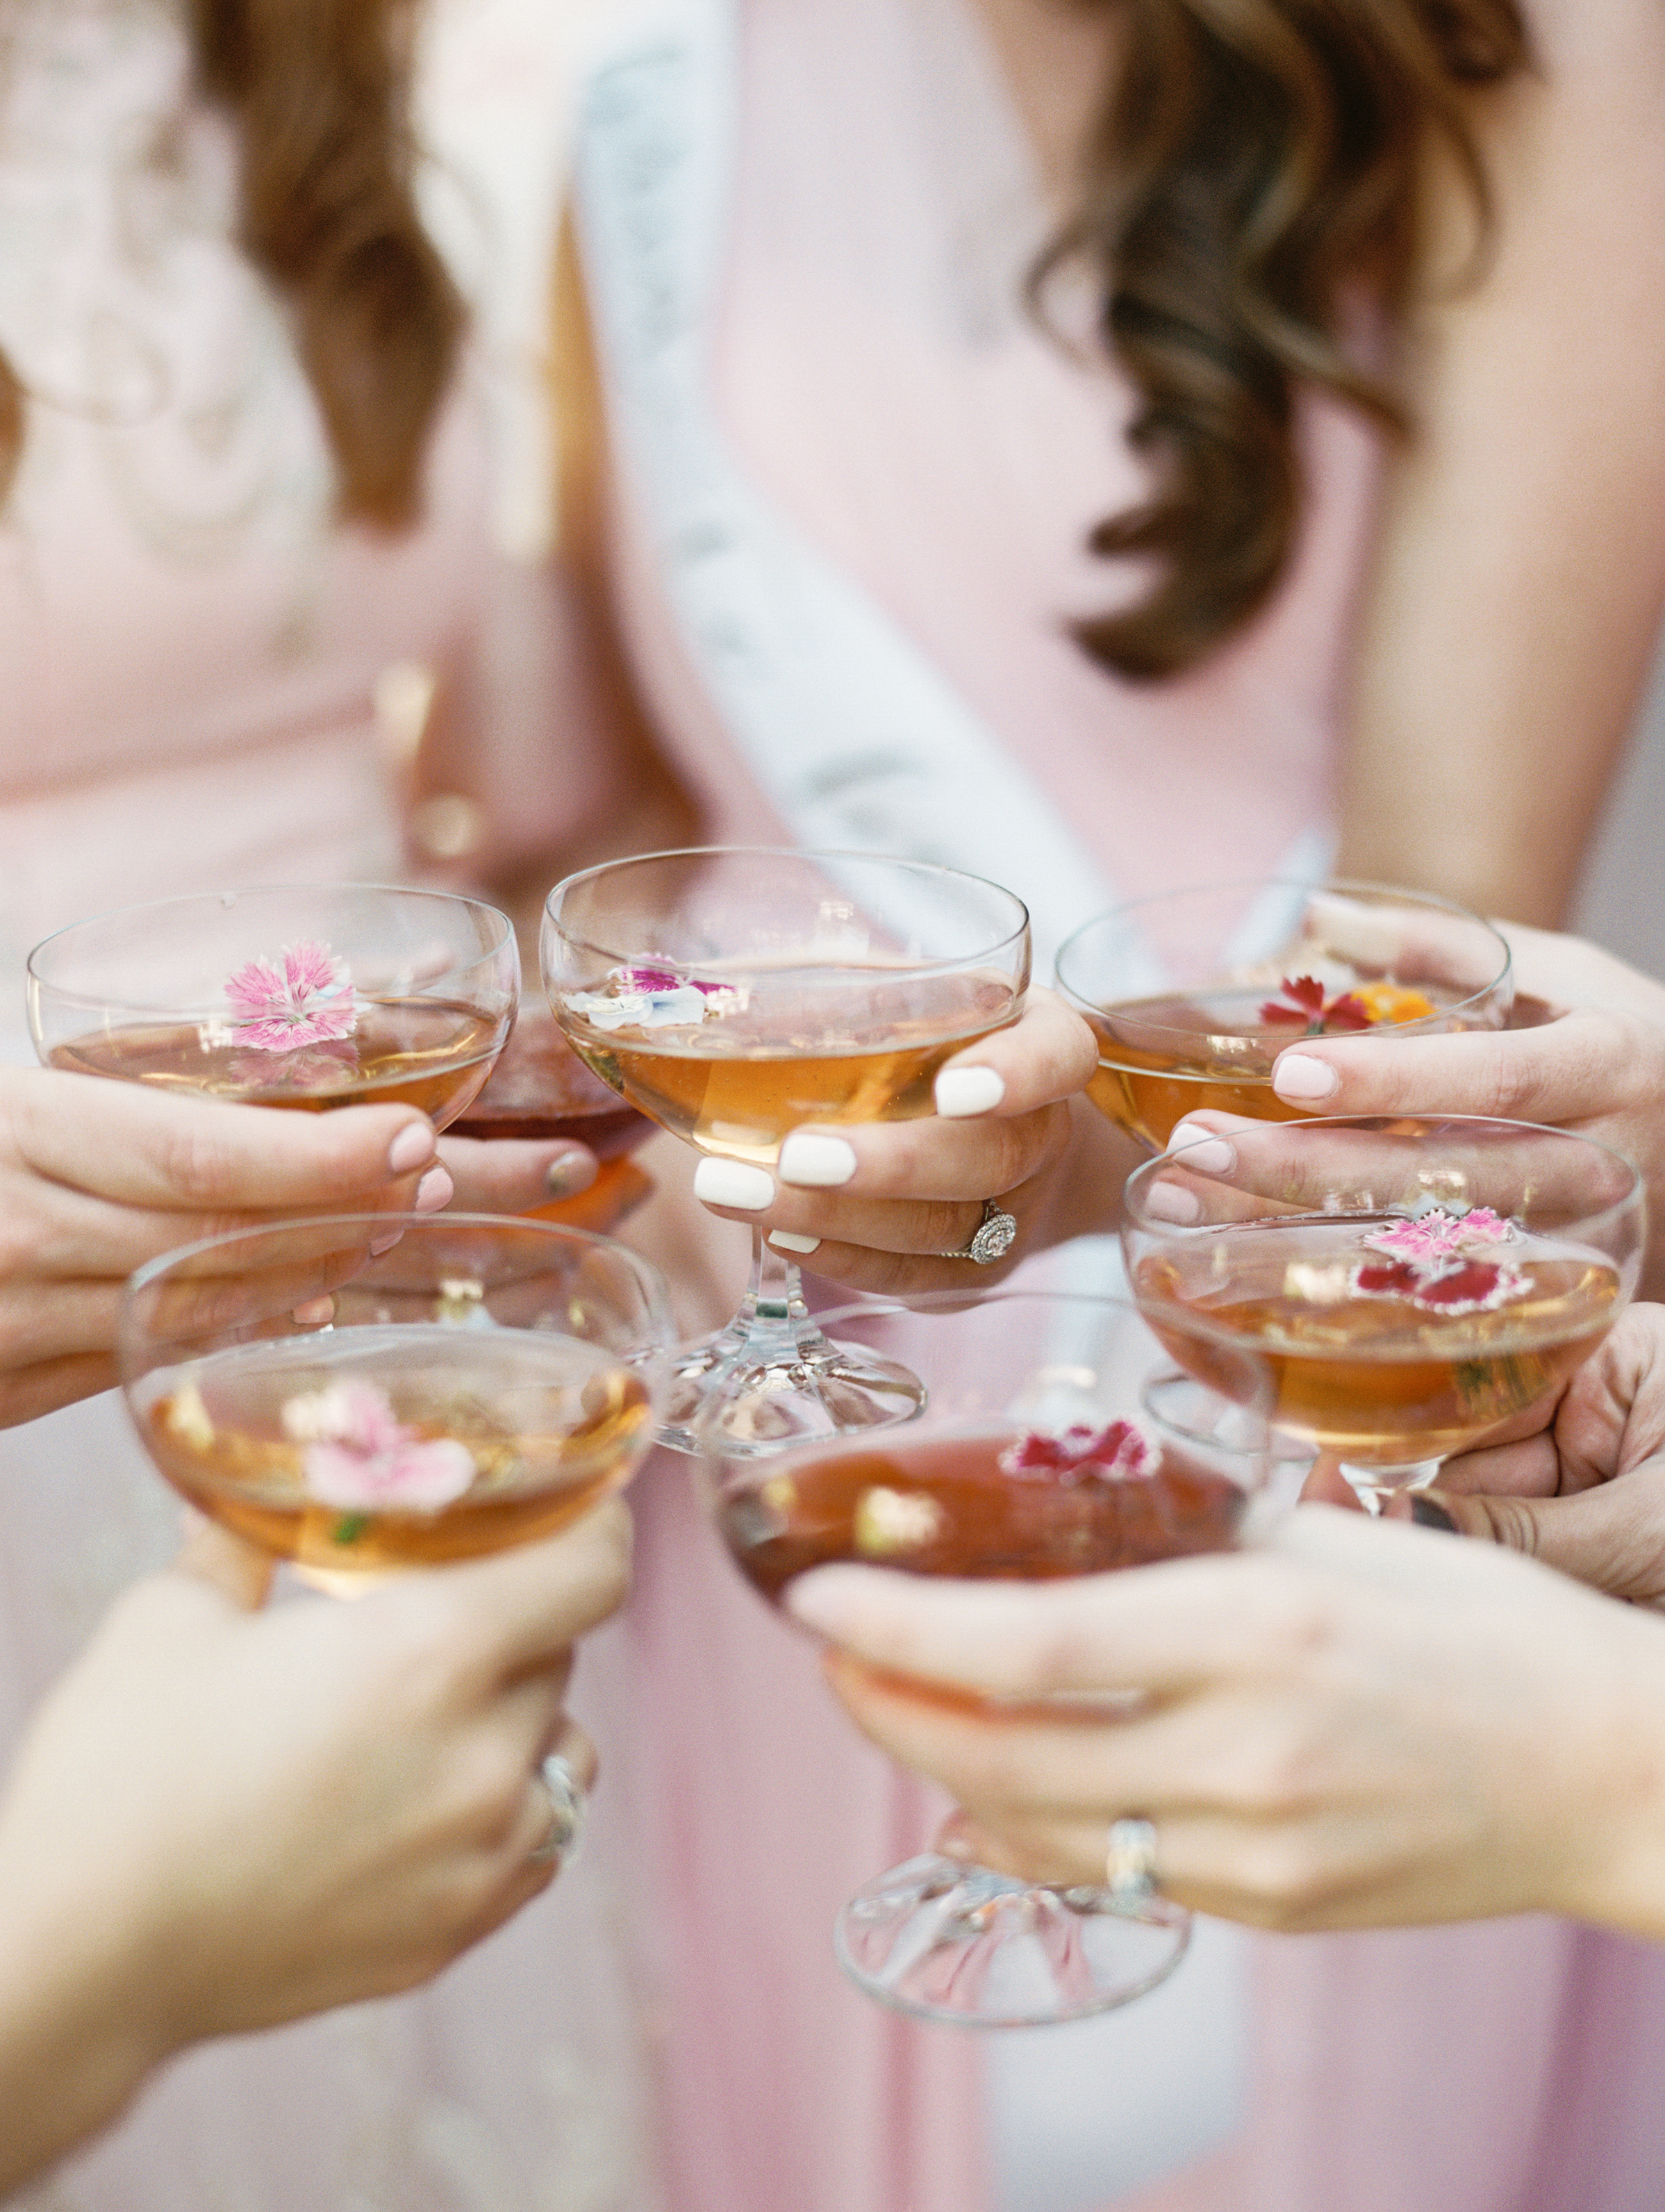 Creative Ways to Pass the Time at Your Bridal Shower If You're Not Opening Gifts